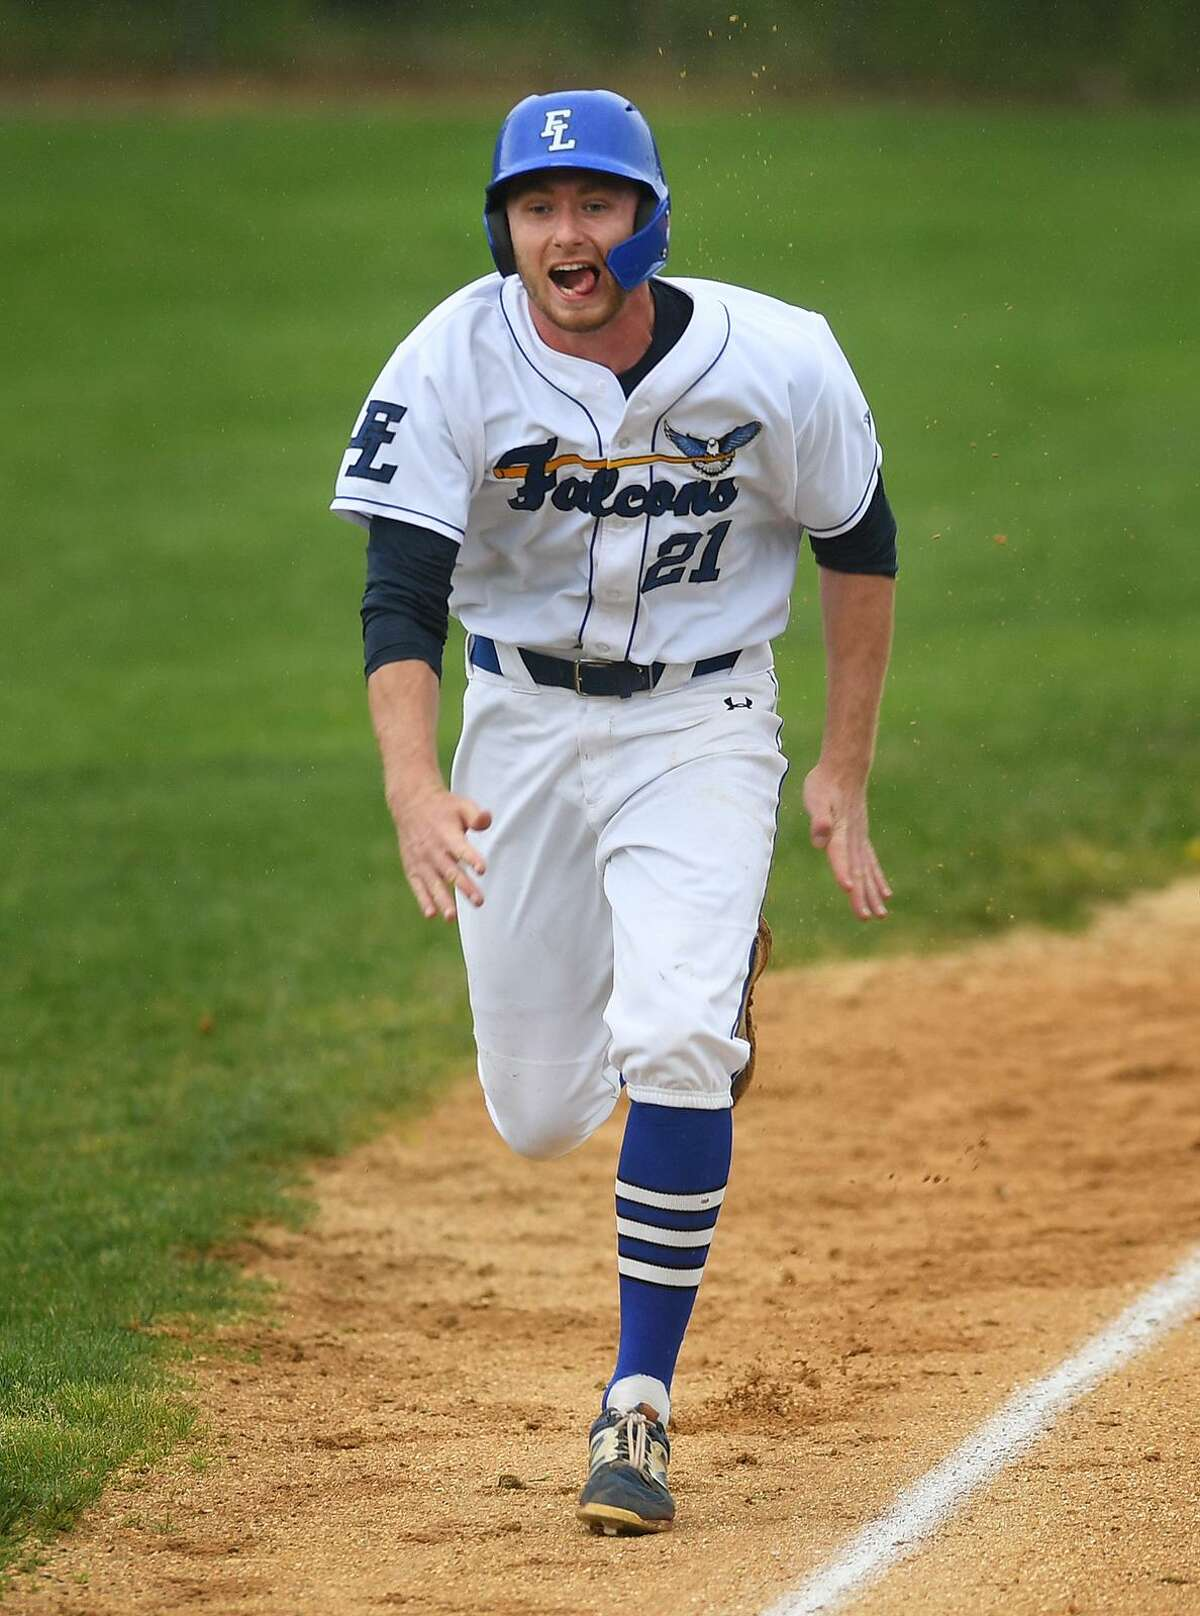 Fairfield Ludlowe's Chris Benton races to the plate to score his team's 4th run of the opening inning of their Class LL baseball playoff game against rival Fairfield Warde in Fairfield, Conn. on Tuesday, May 28, 2019.